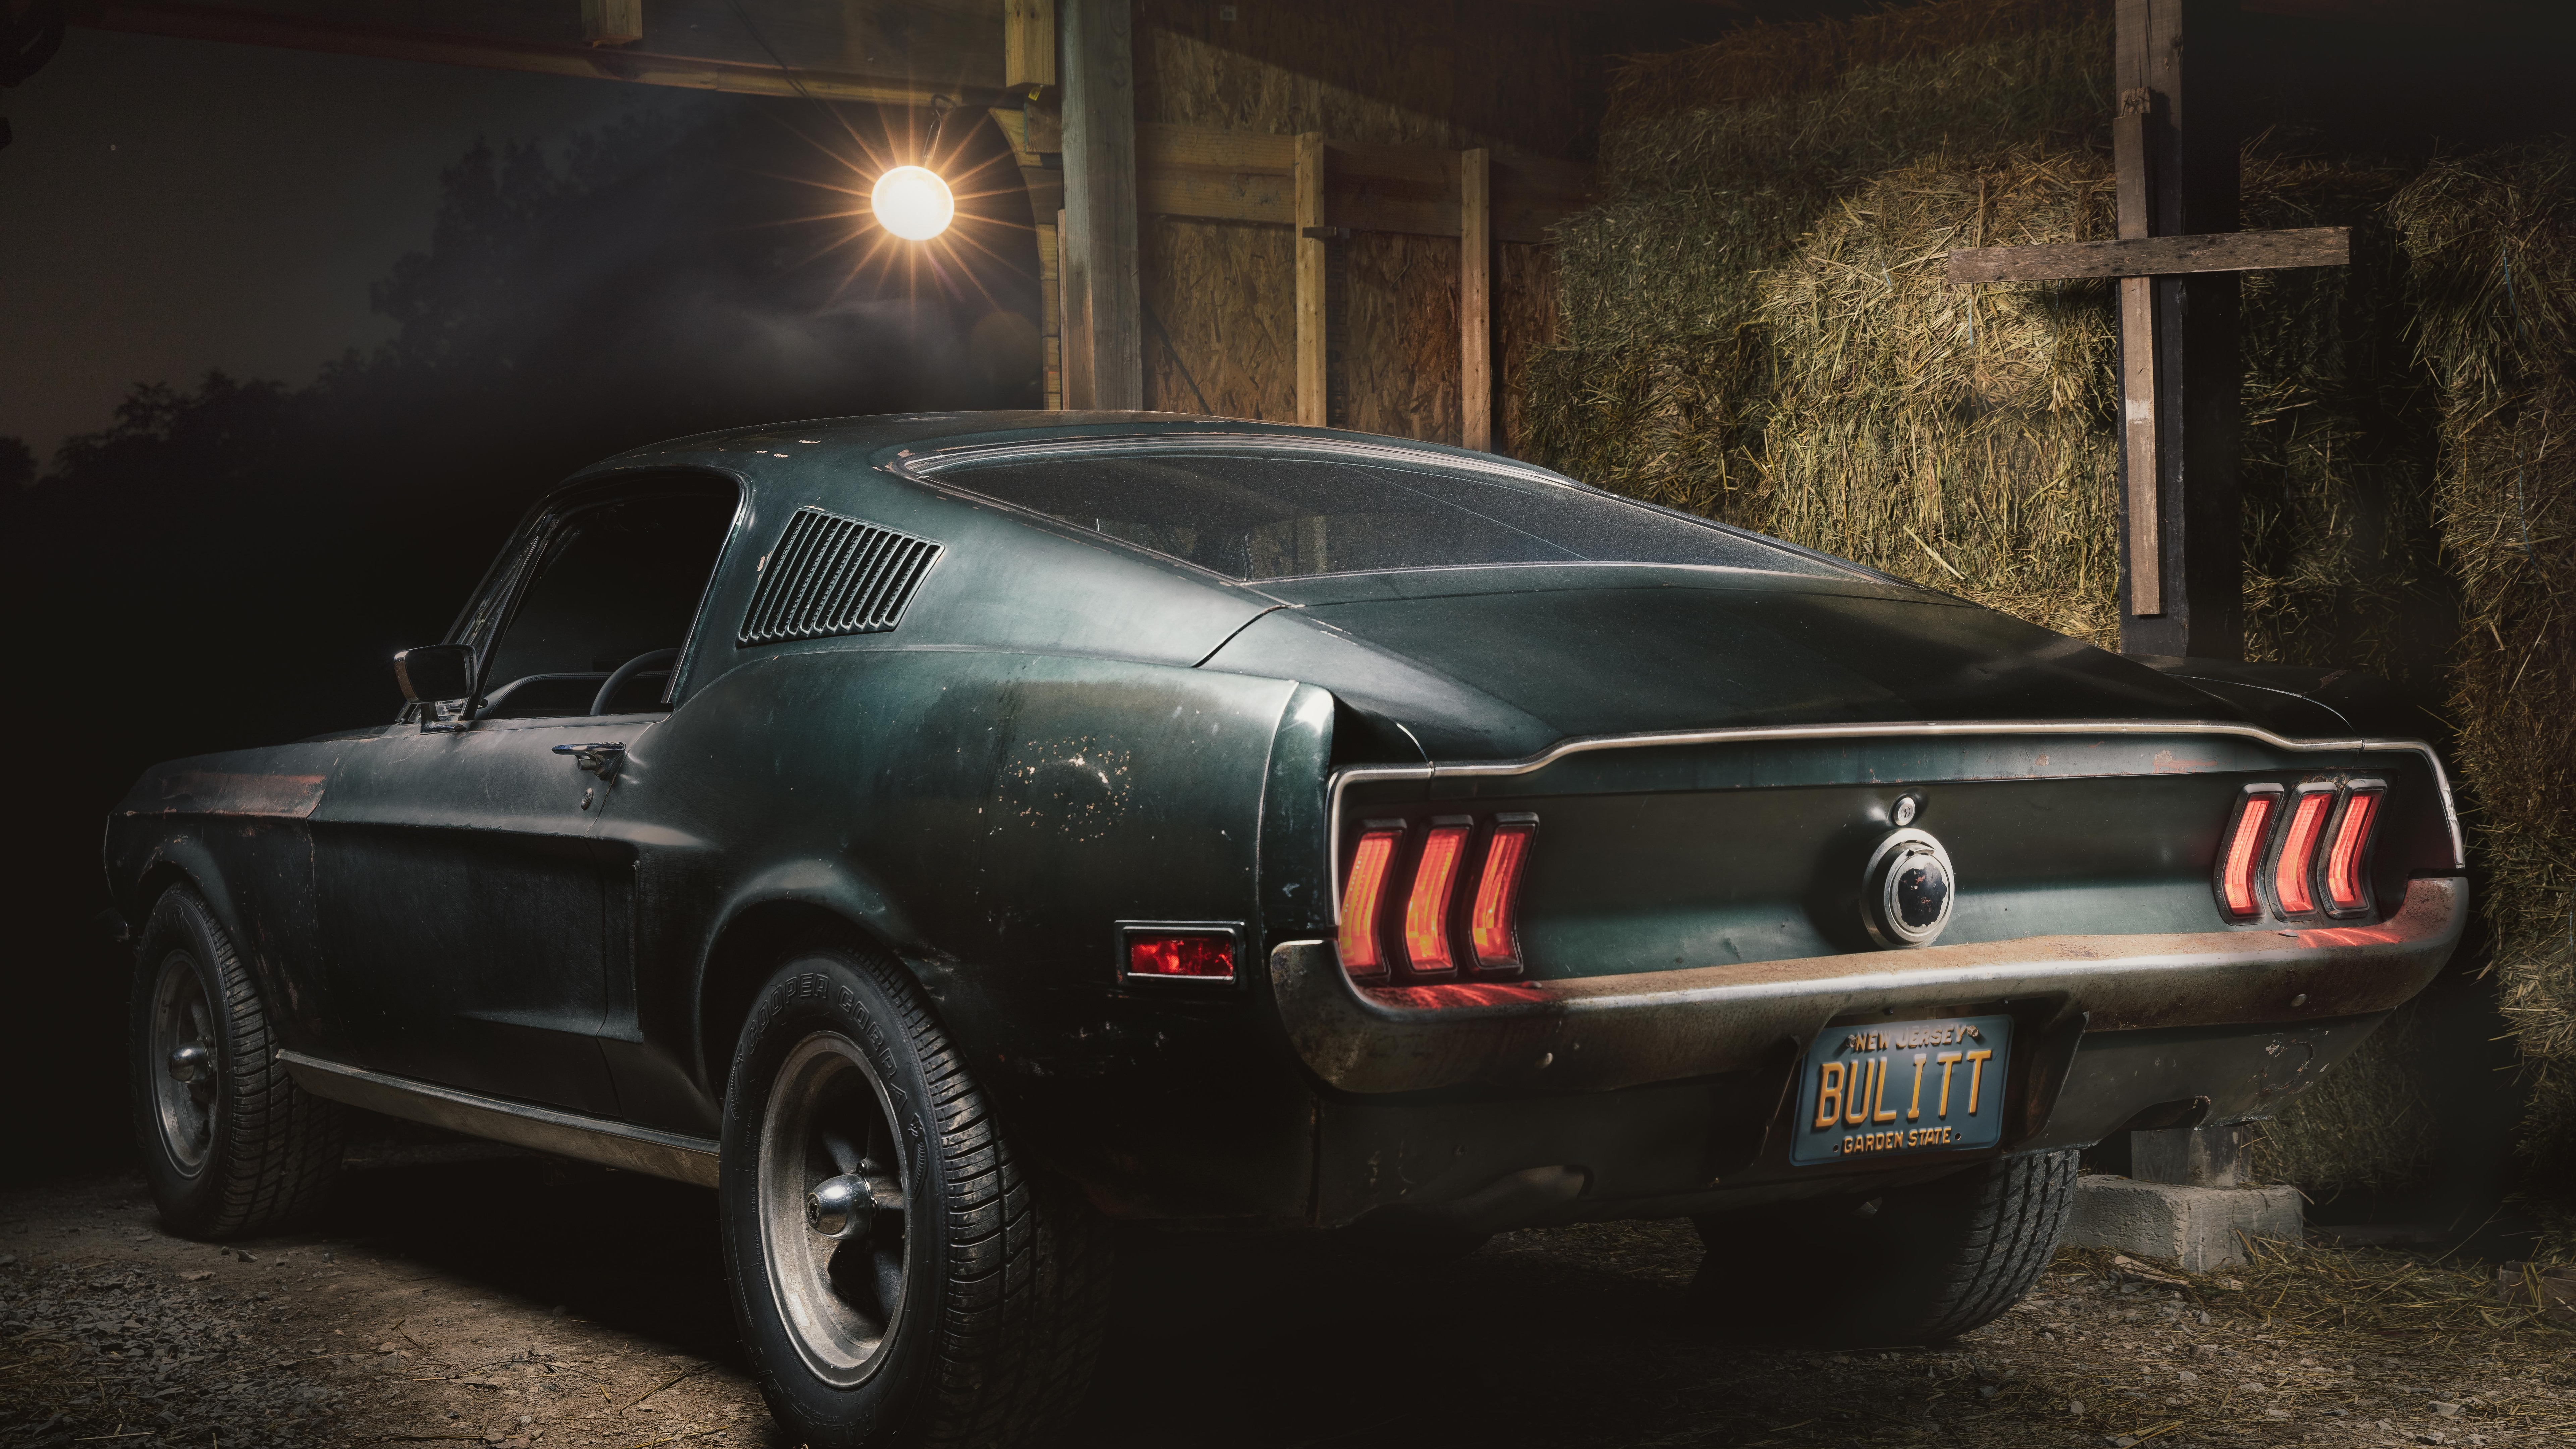 Favorite this post aug 14 1970 fastback mustang factory ac $13,000 (abilene dallas ) pic hide this posting restore restore this posting. 7680x4320 1968 Mustang Gt Fastback 8k Rear 8k Hd 4k Wallpapers Images Backgrounds Photos And Pictures